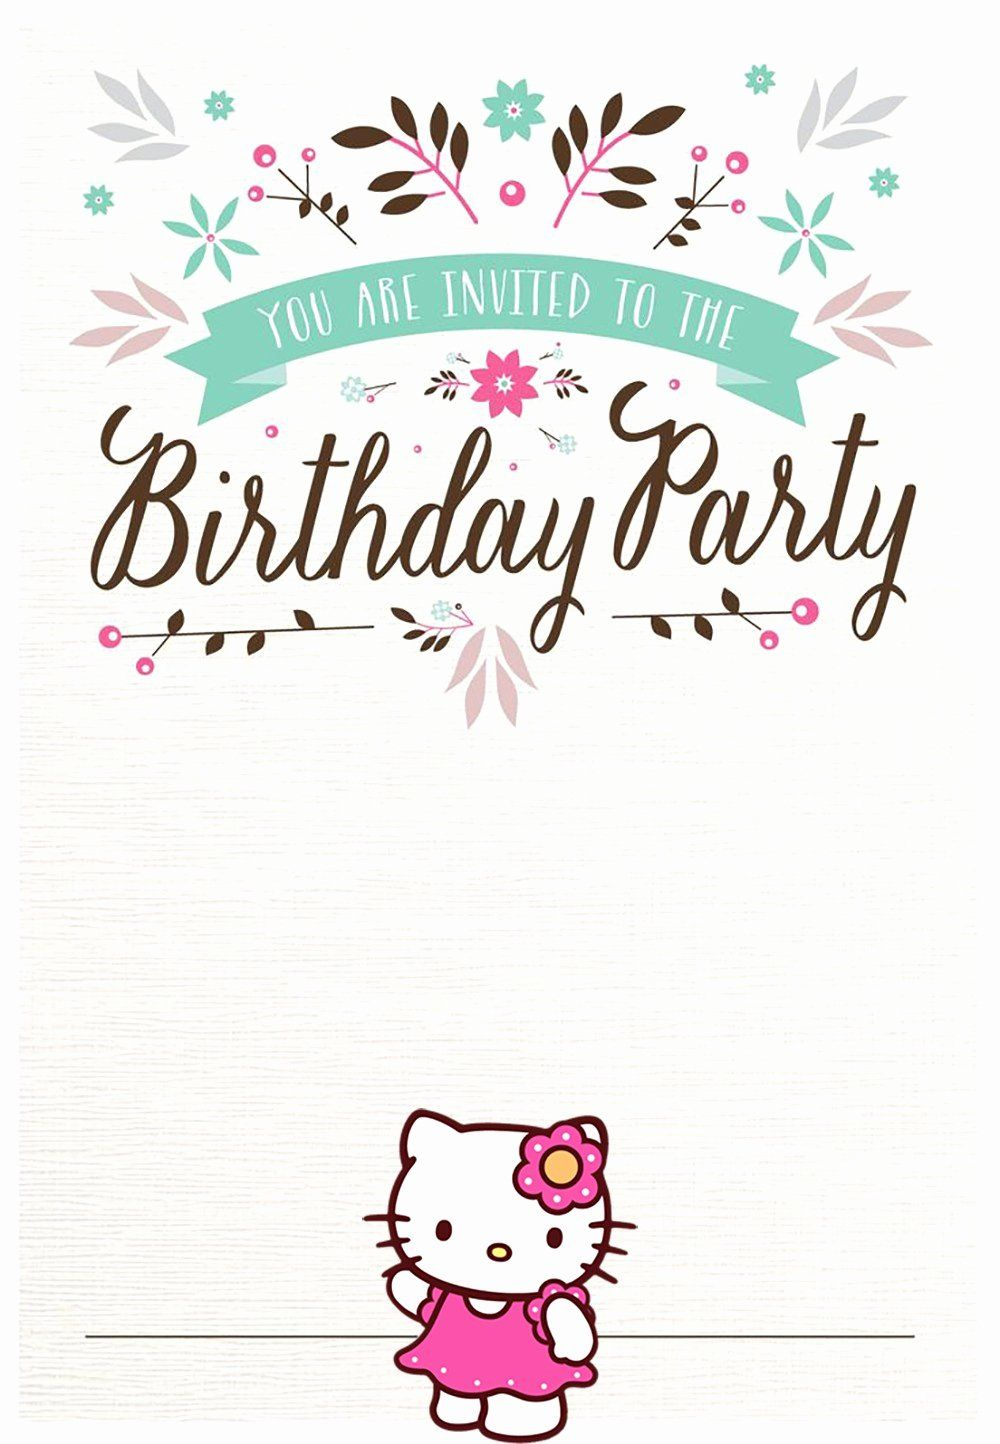 Hello Kitty Birthday Invitation Inspirational Hello Kitty Free P In 2020 Hello Kitty Birthday Invitations Hello Kitty Birthday Party Free Birthday Invitation Templates